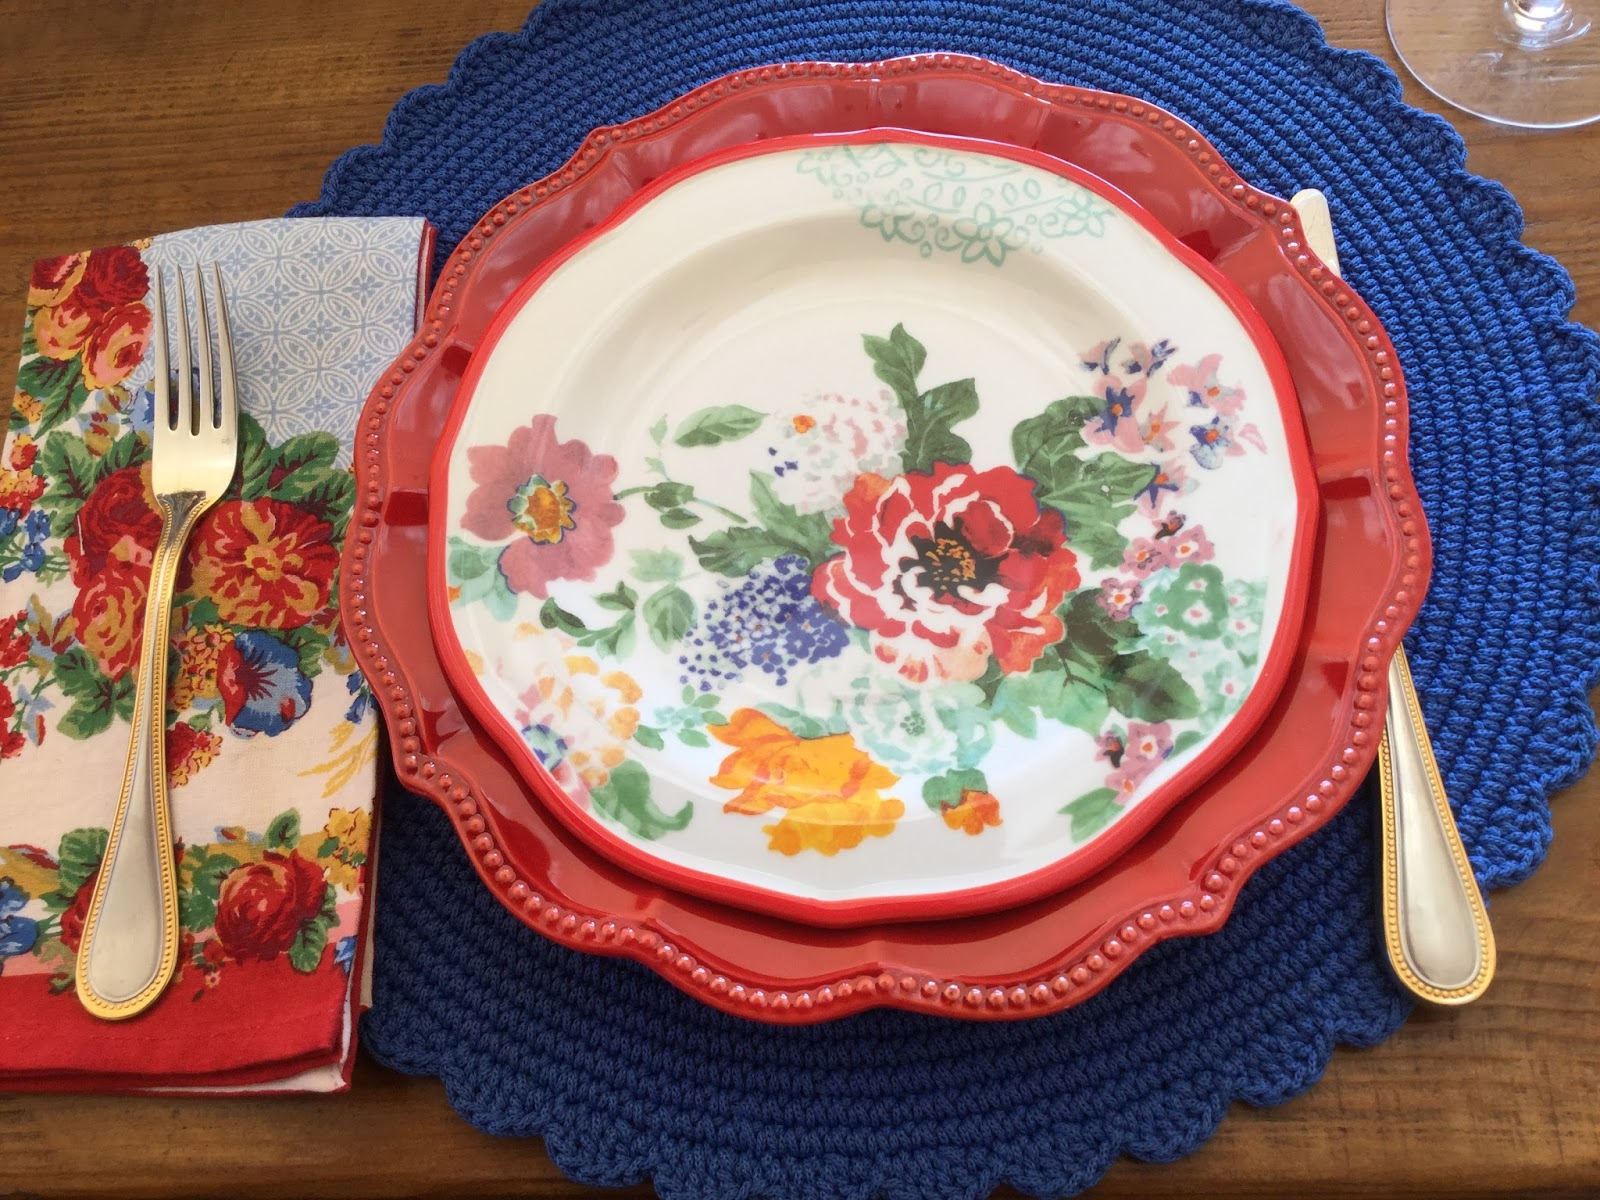 ... acquired last spring brought out the blue in the salad plates (also Pioneer Woman). And last summer while in Cambria I spotted these April Cornell ... & Accounting For All My Blessings: Mix \u0027n Match Table Setting